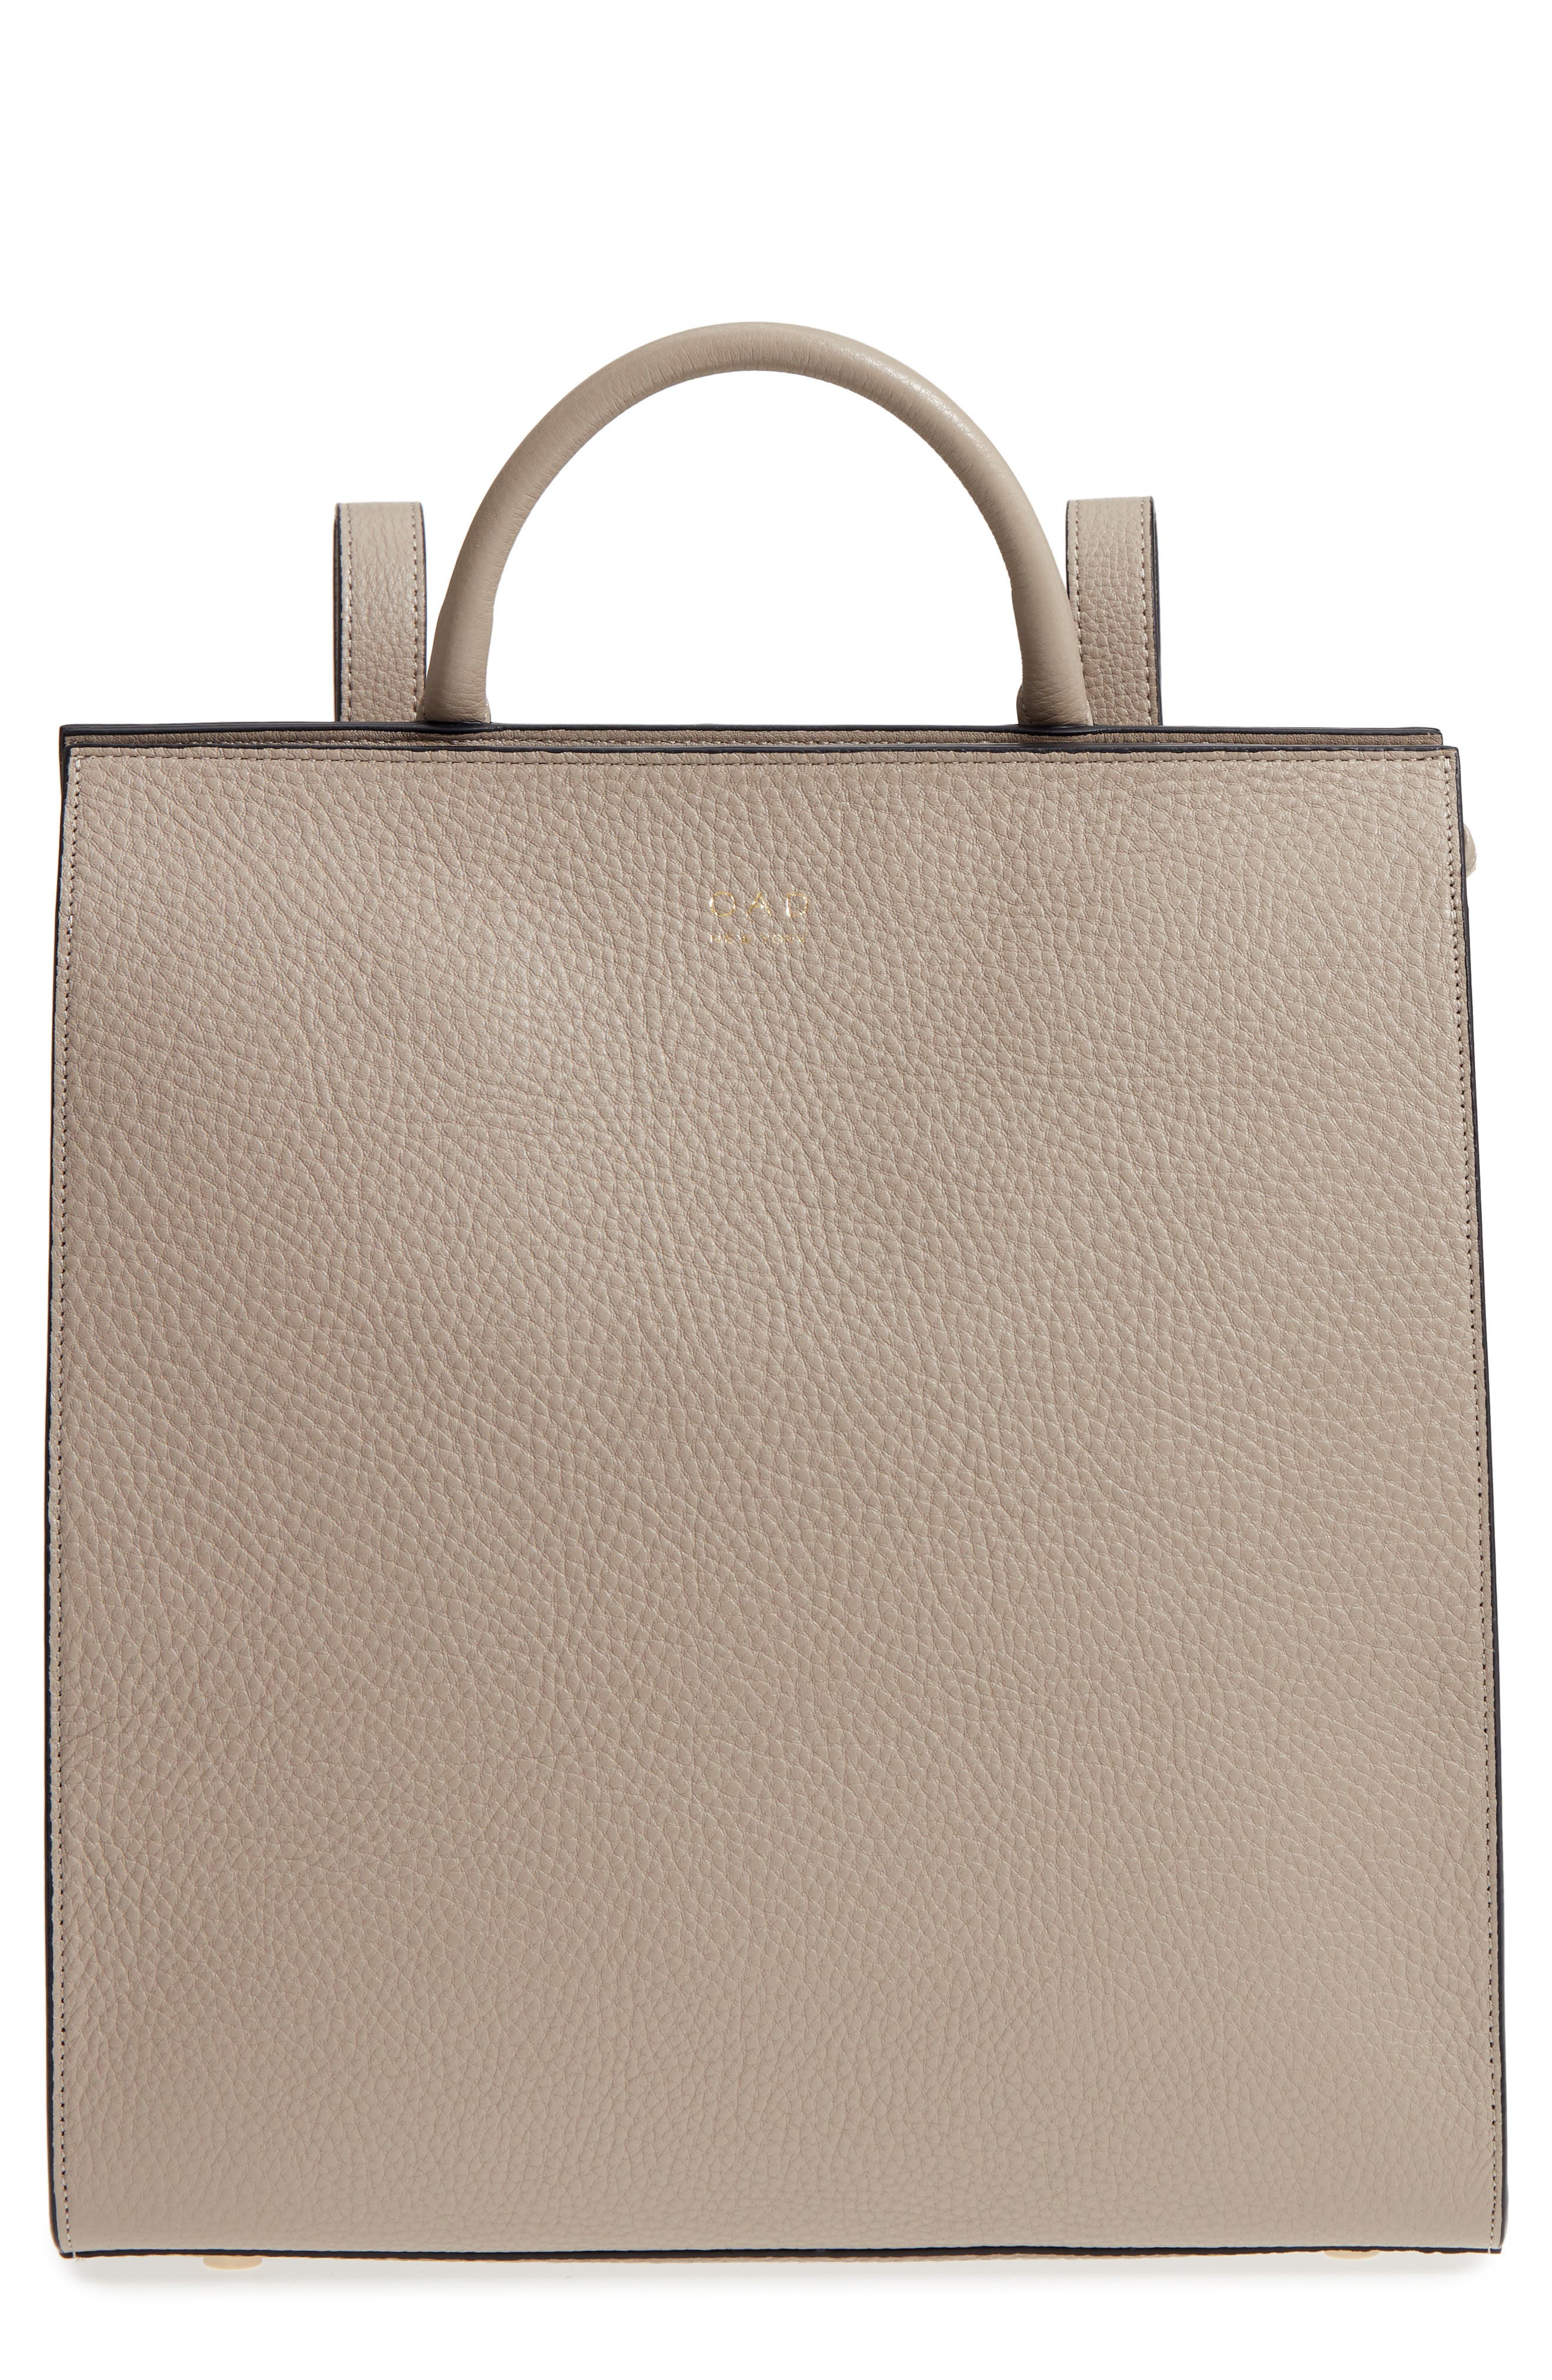 Arc Leather Backpack,                         Main,                         color, Taupe